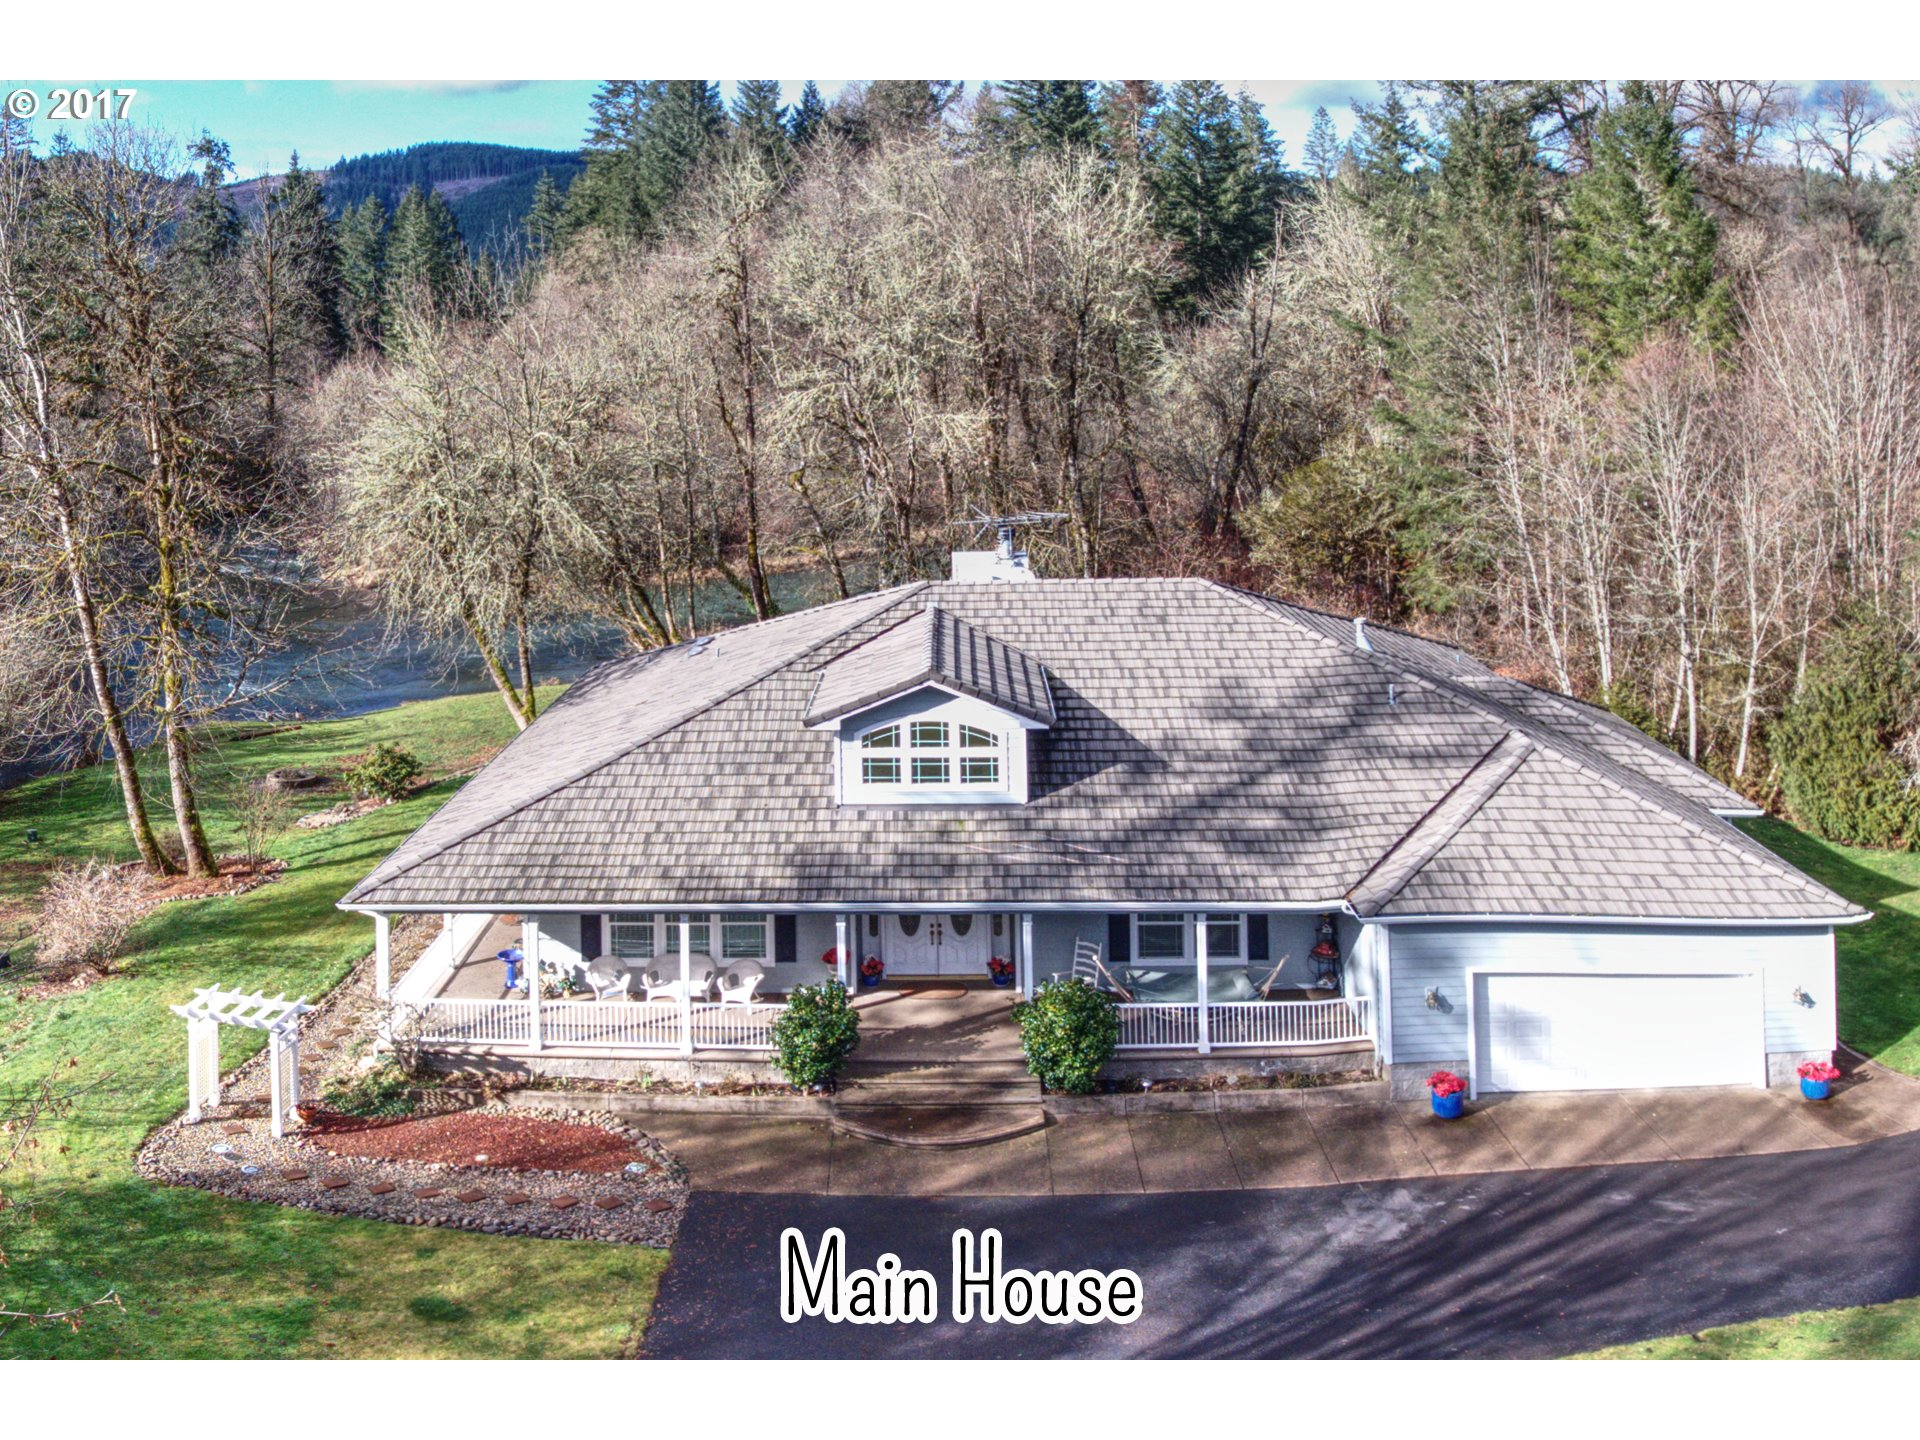 92774 PASCHELKE RD, Marcola, OR 97454